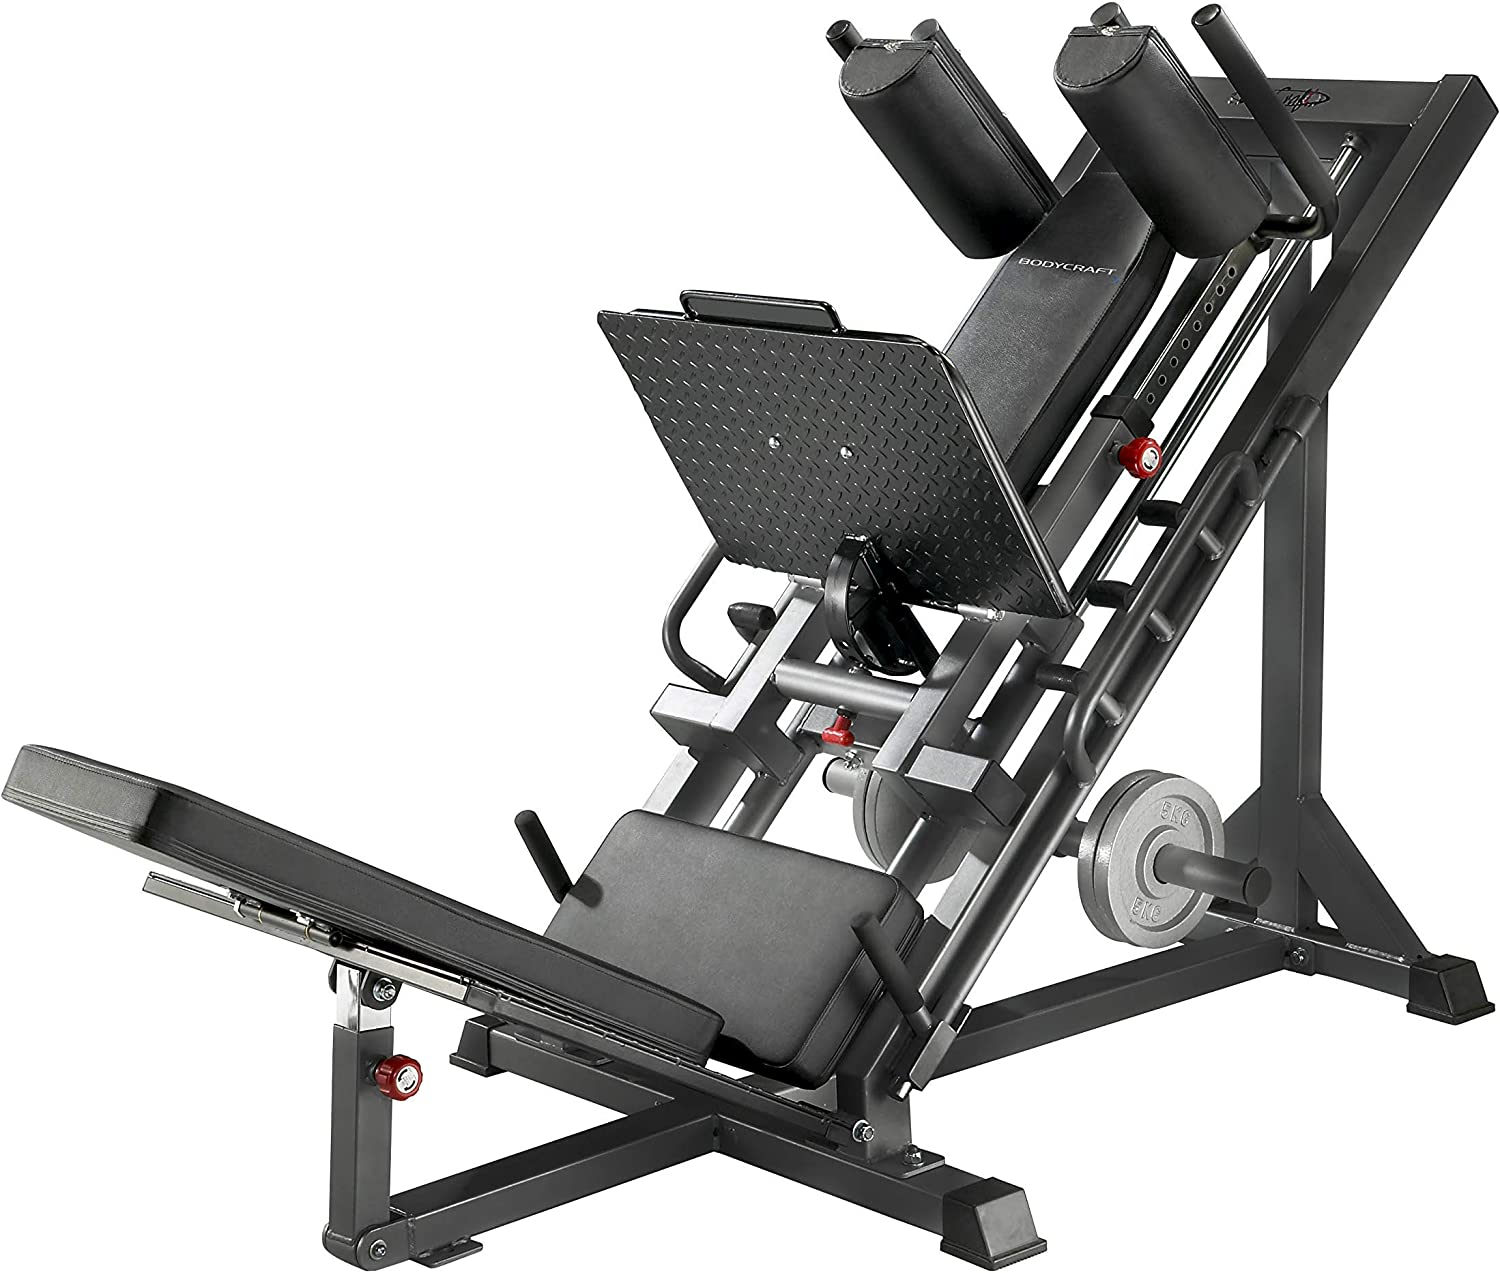 Bodycraft F660 Leg Press Review – Hip Sled For Lower Growth